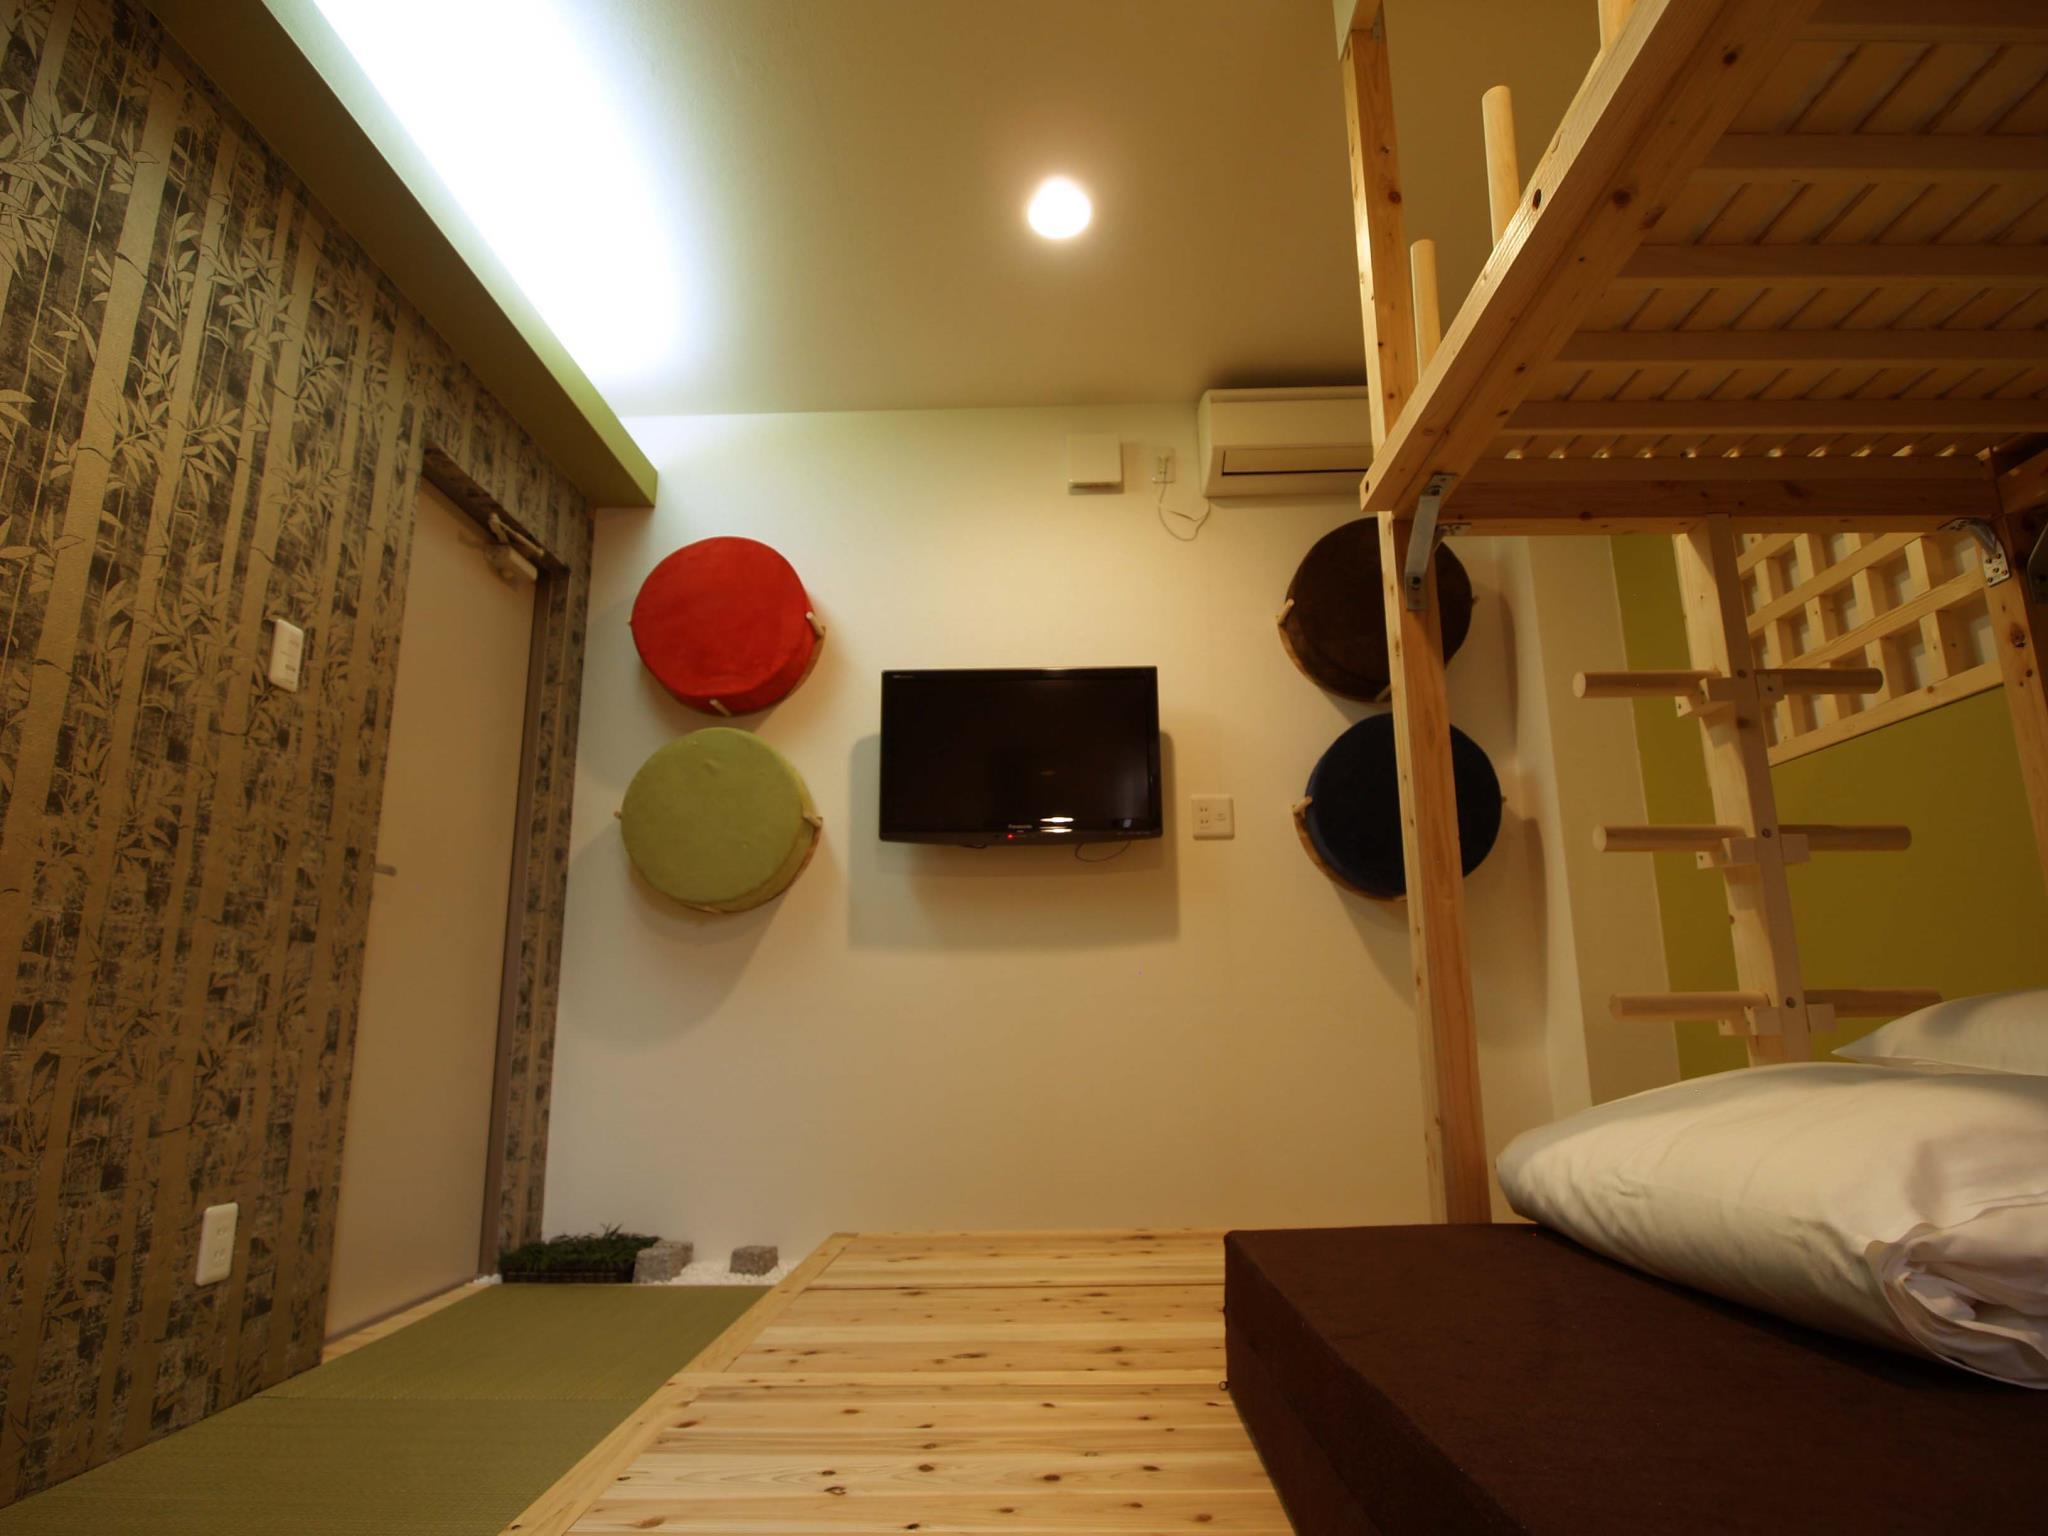 Quarto familiar estilo japonês (Japanese Style Family Room)